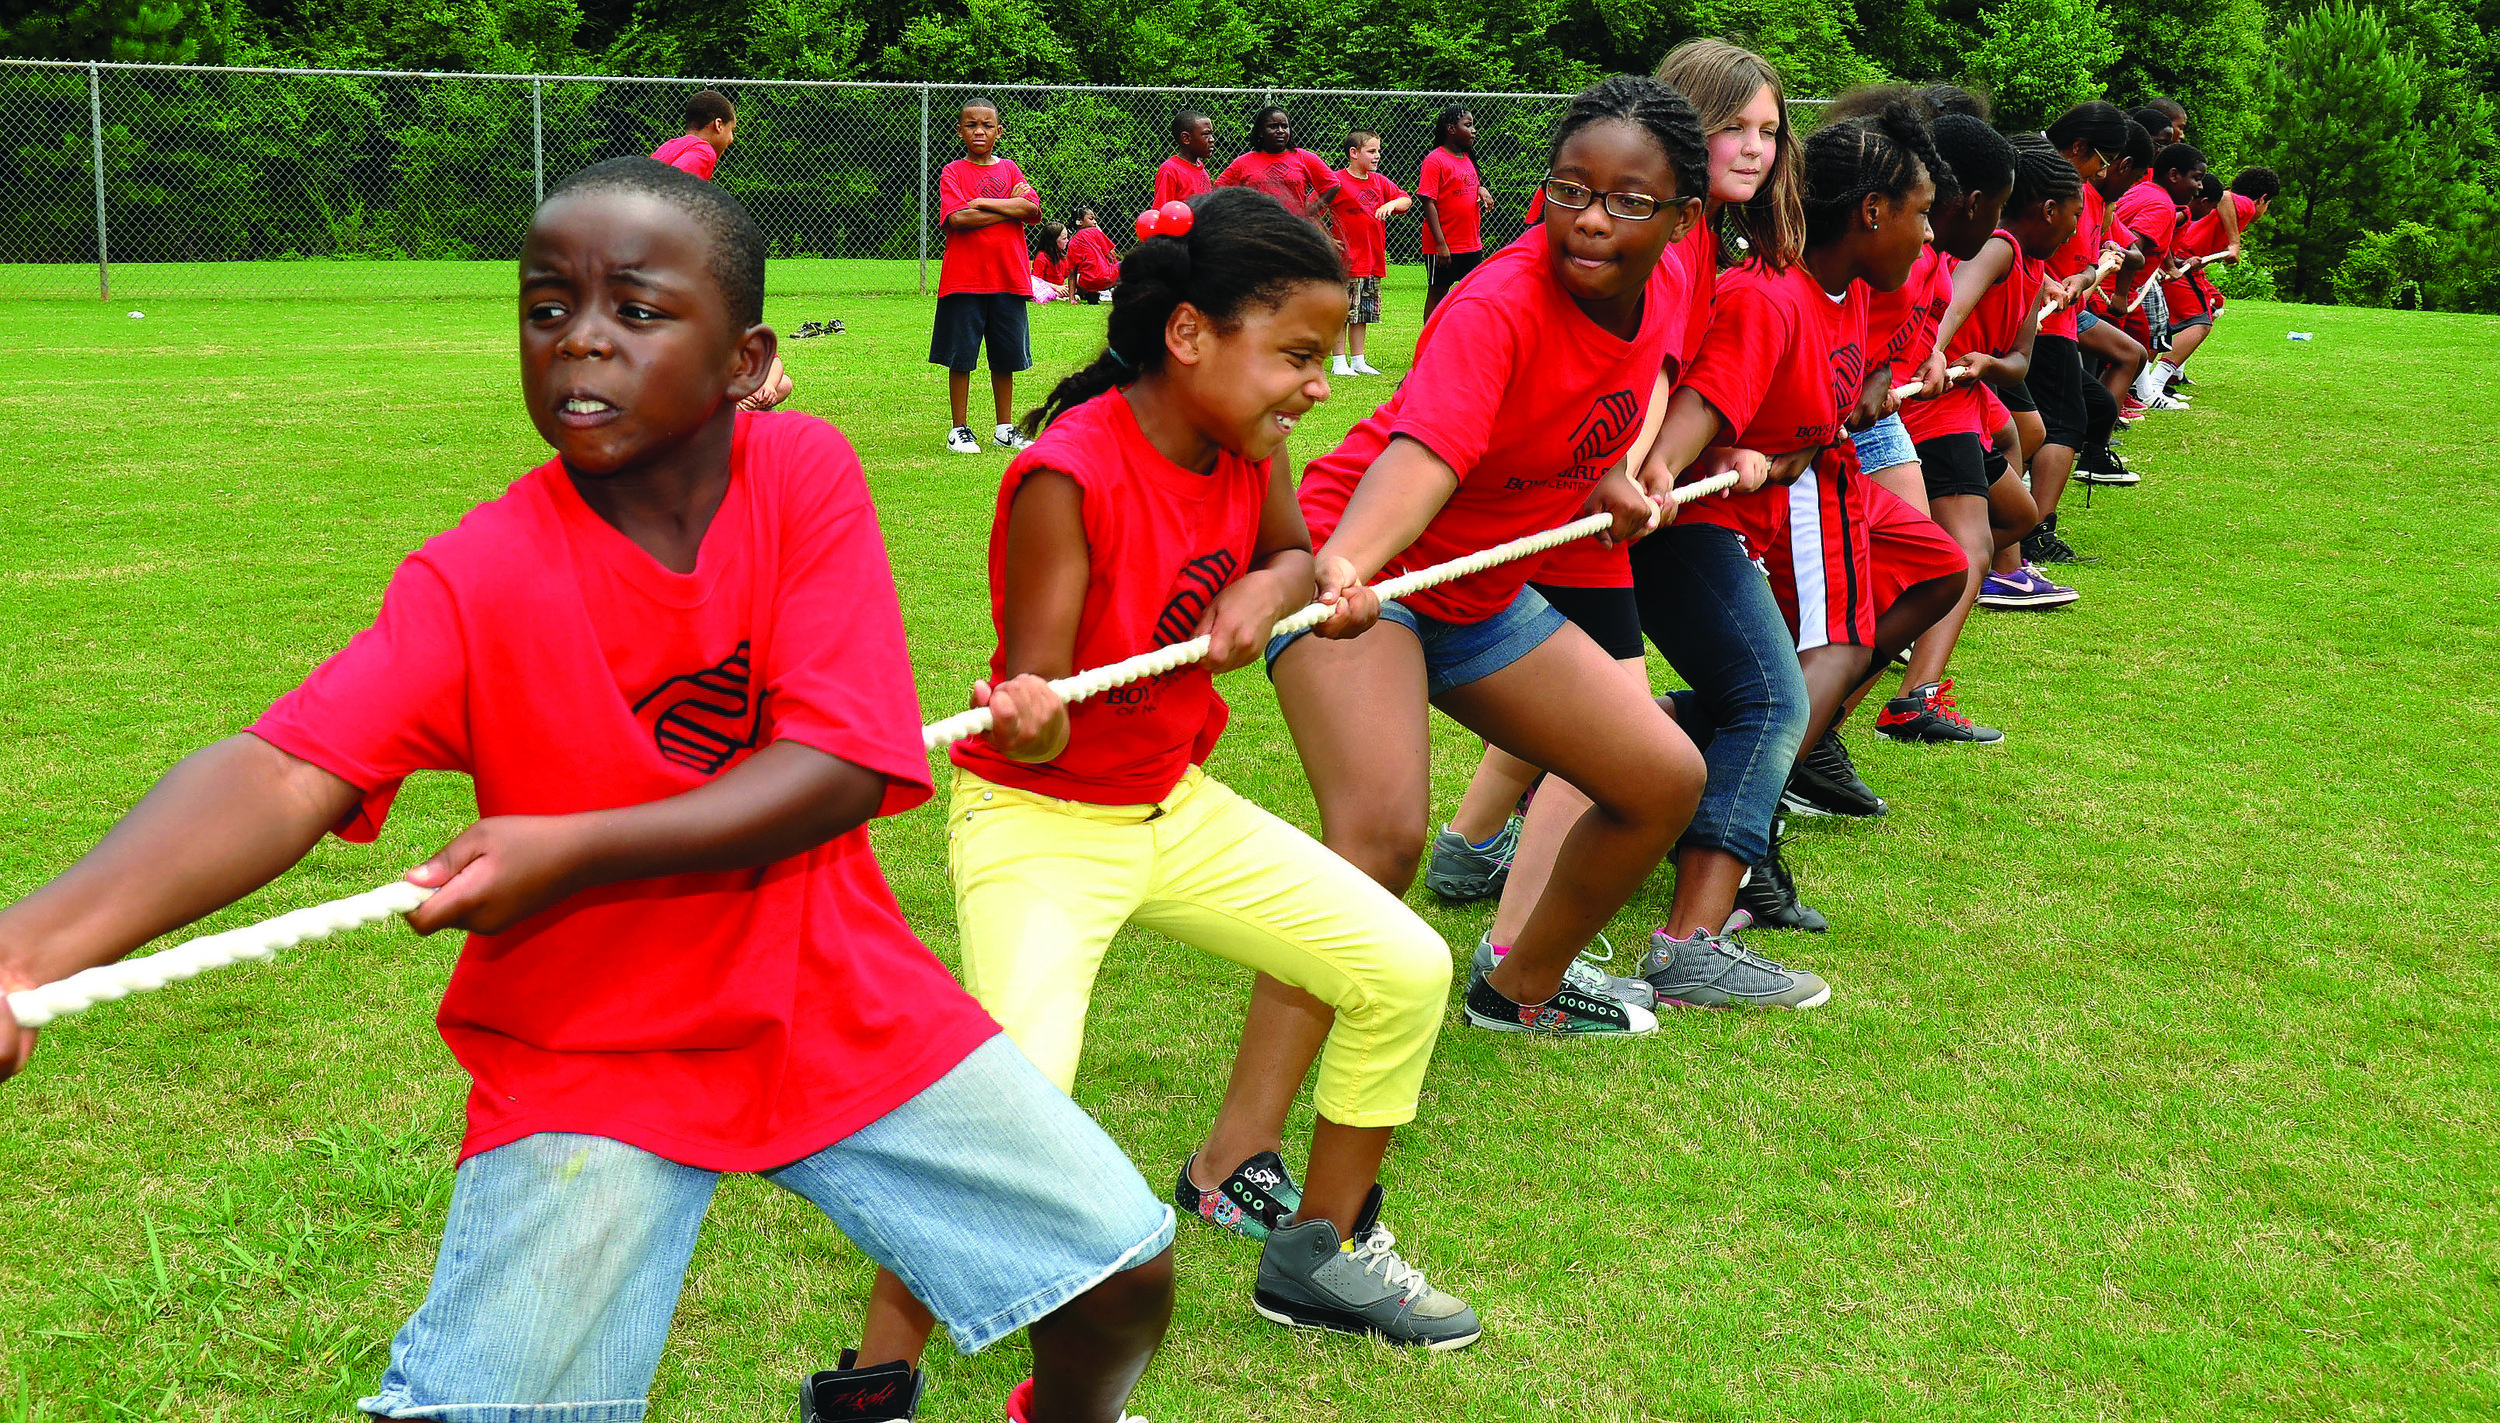 Tug-of-War will be one of the many active play activities during Day For Kids, Sept. 16 from 10 AM - 1 PM.